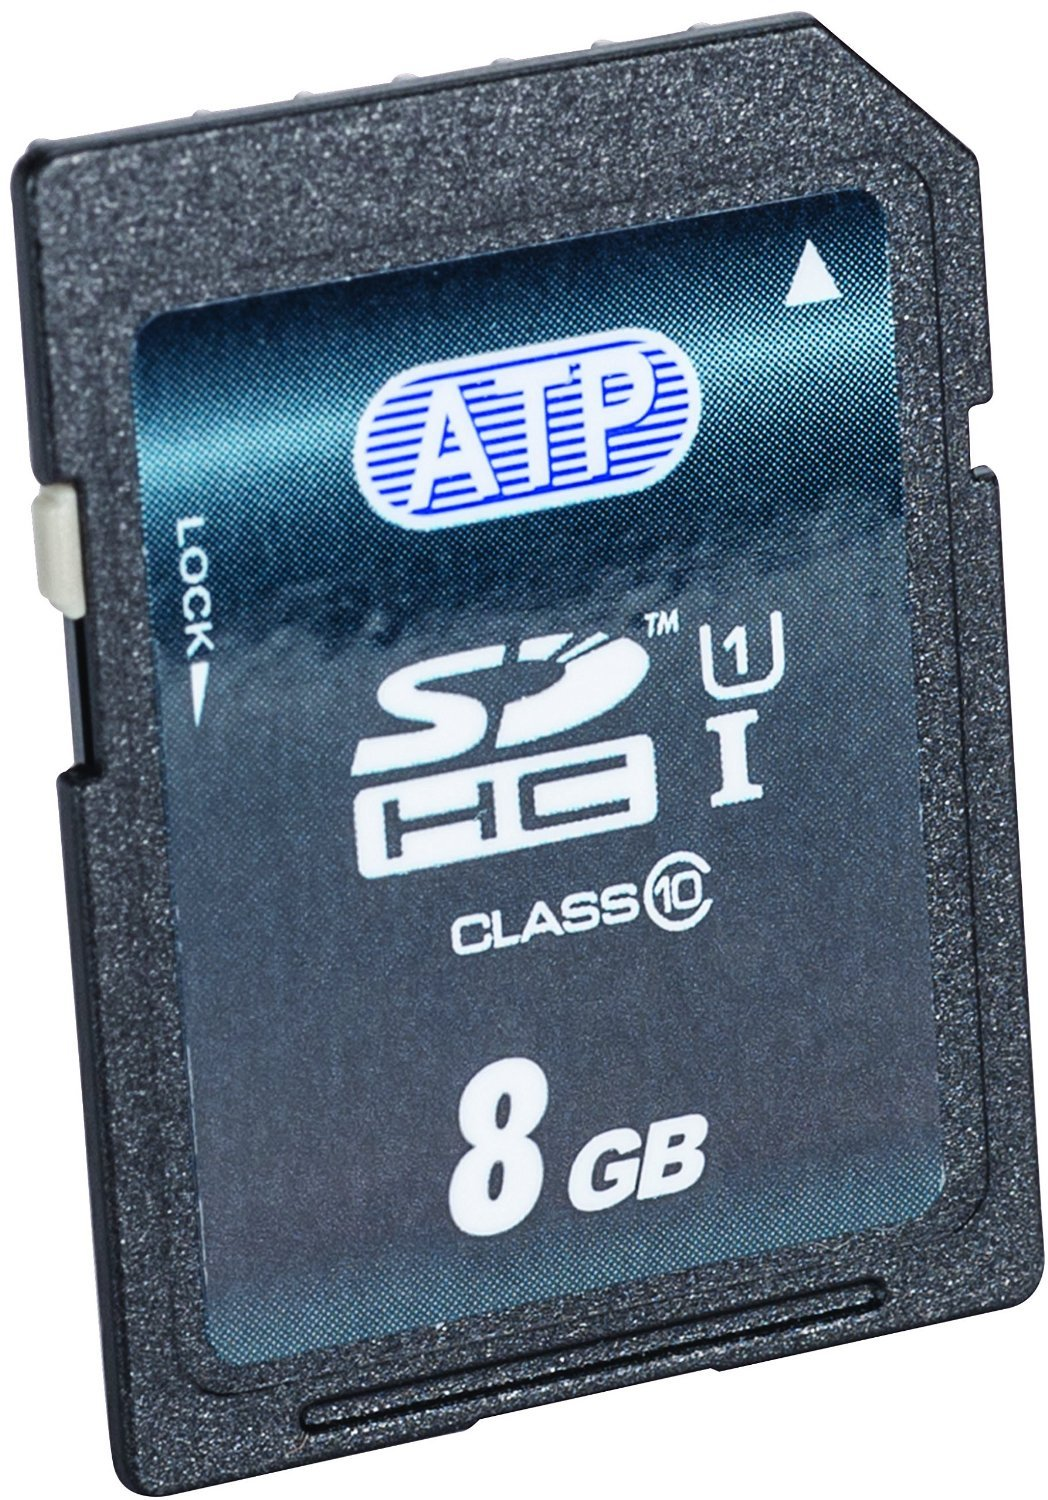 MSA (Mine Safety Appliances) 10127111 MSA 4 GB SD/SDHC Memory Card for Use with Galaxy GX2 Automated Test System, Plastic, 0.8'' x 1.26'' x 0.91''